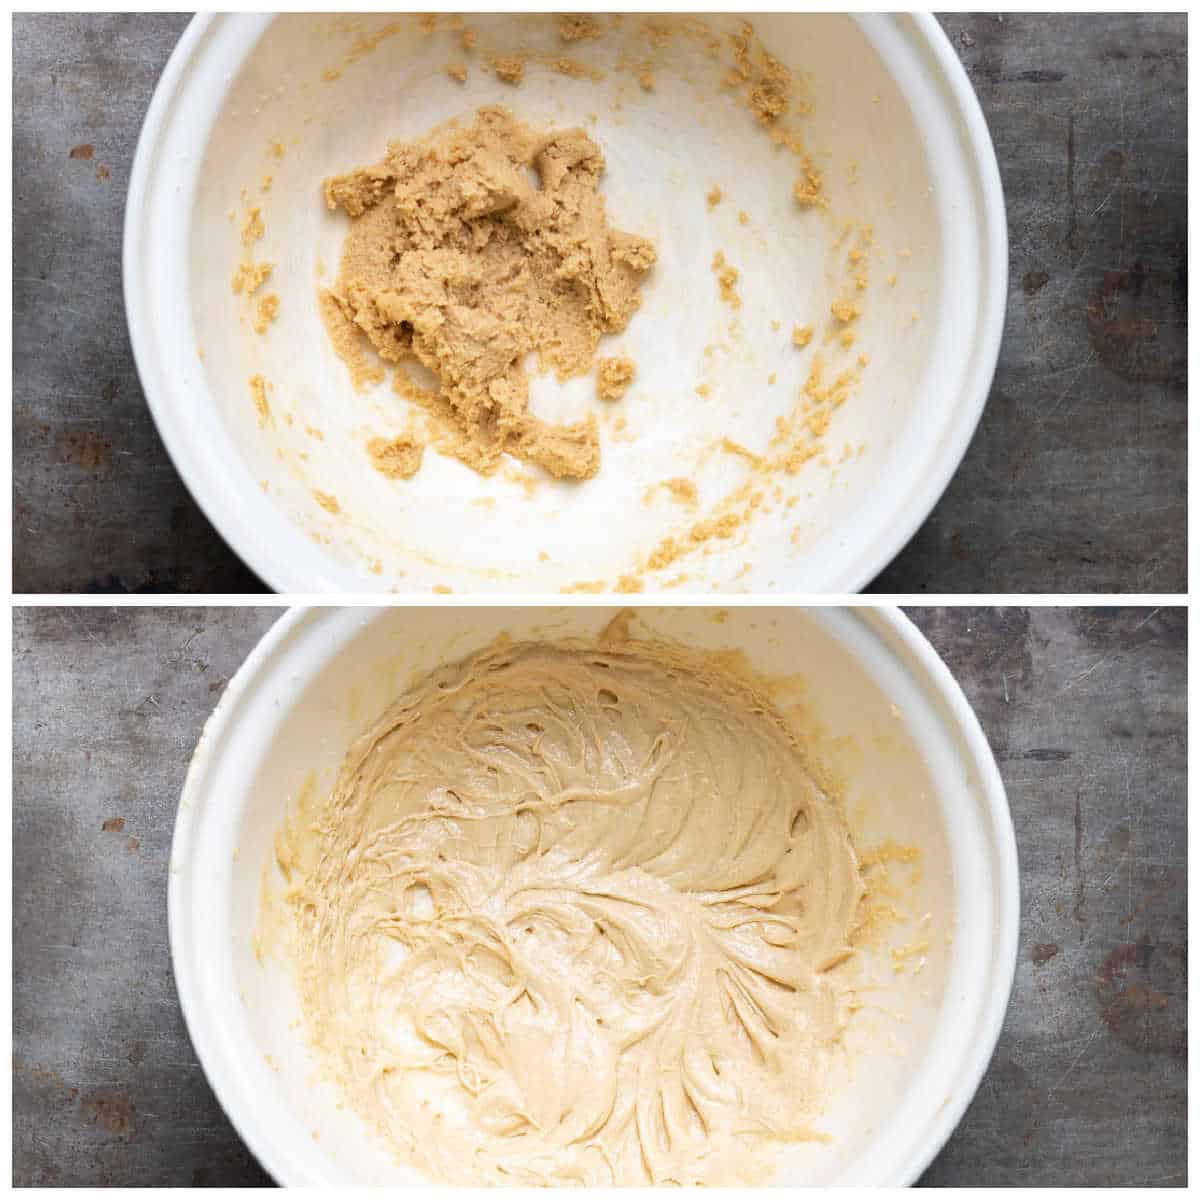 Making cookie dough.